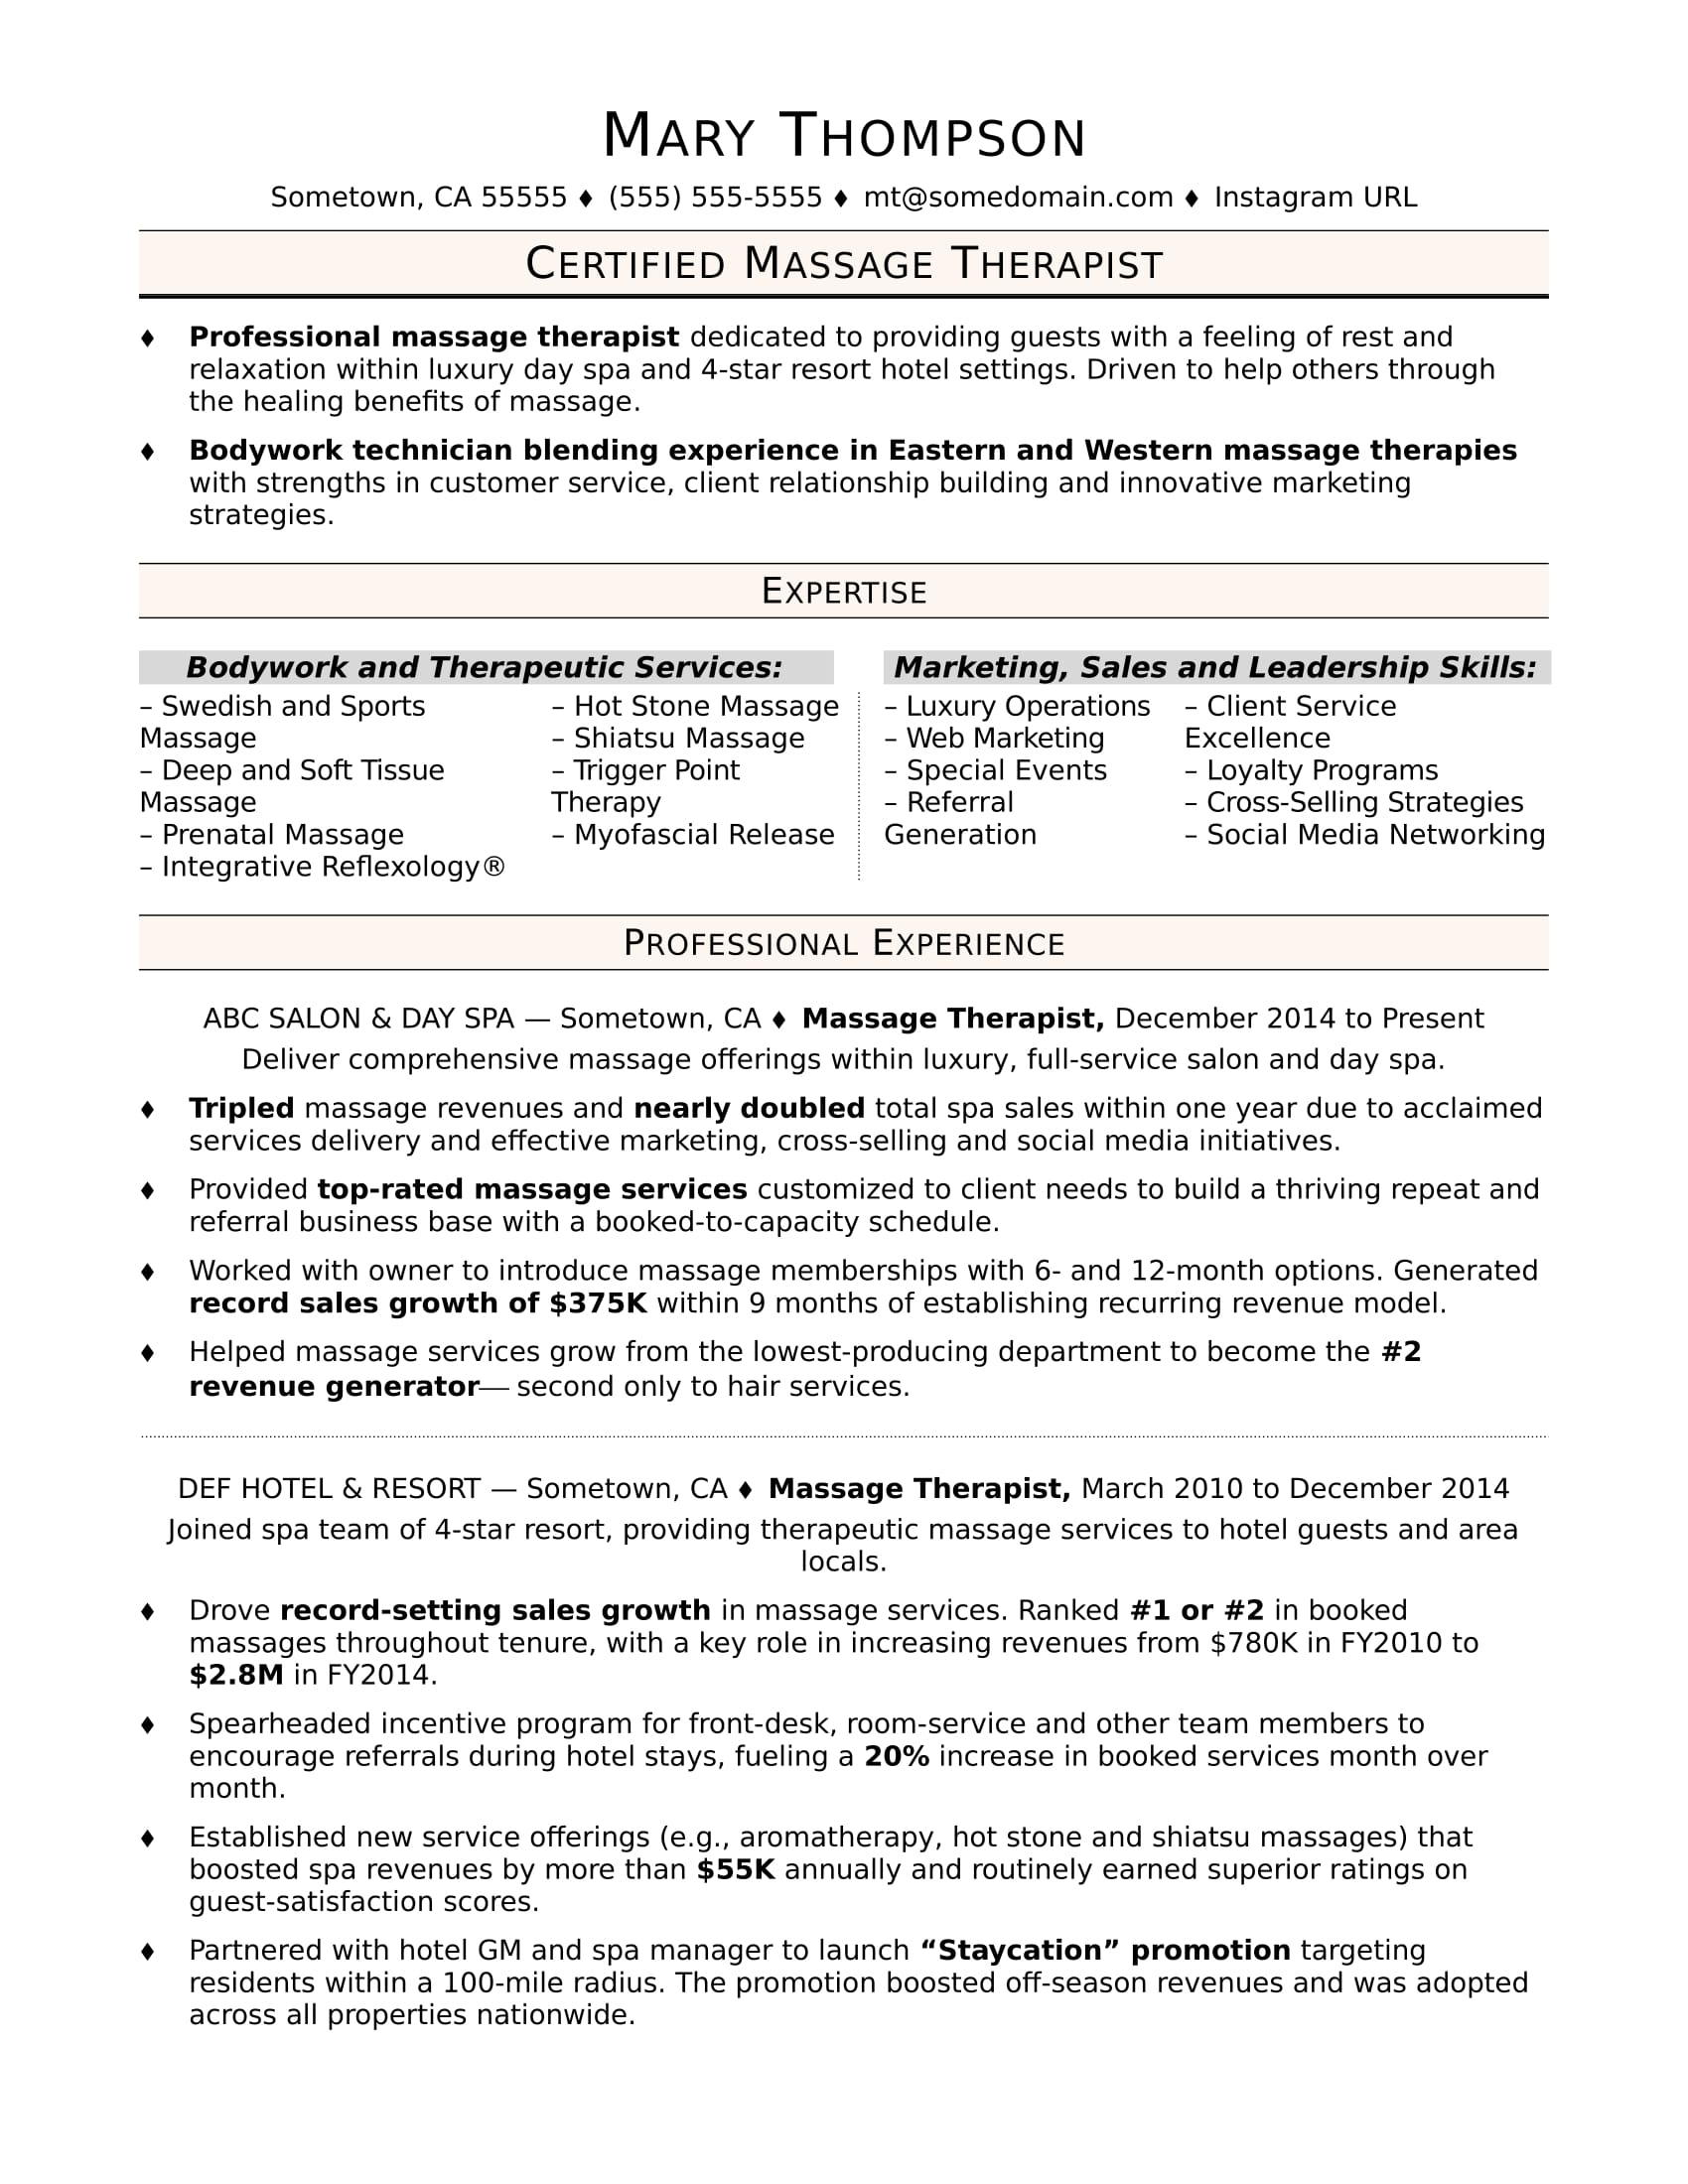 massage therapist resume sample - Counseling Resume Sample